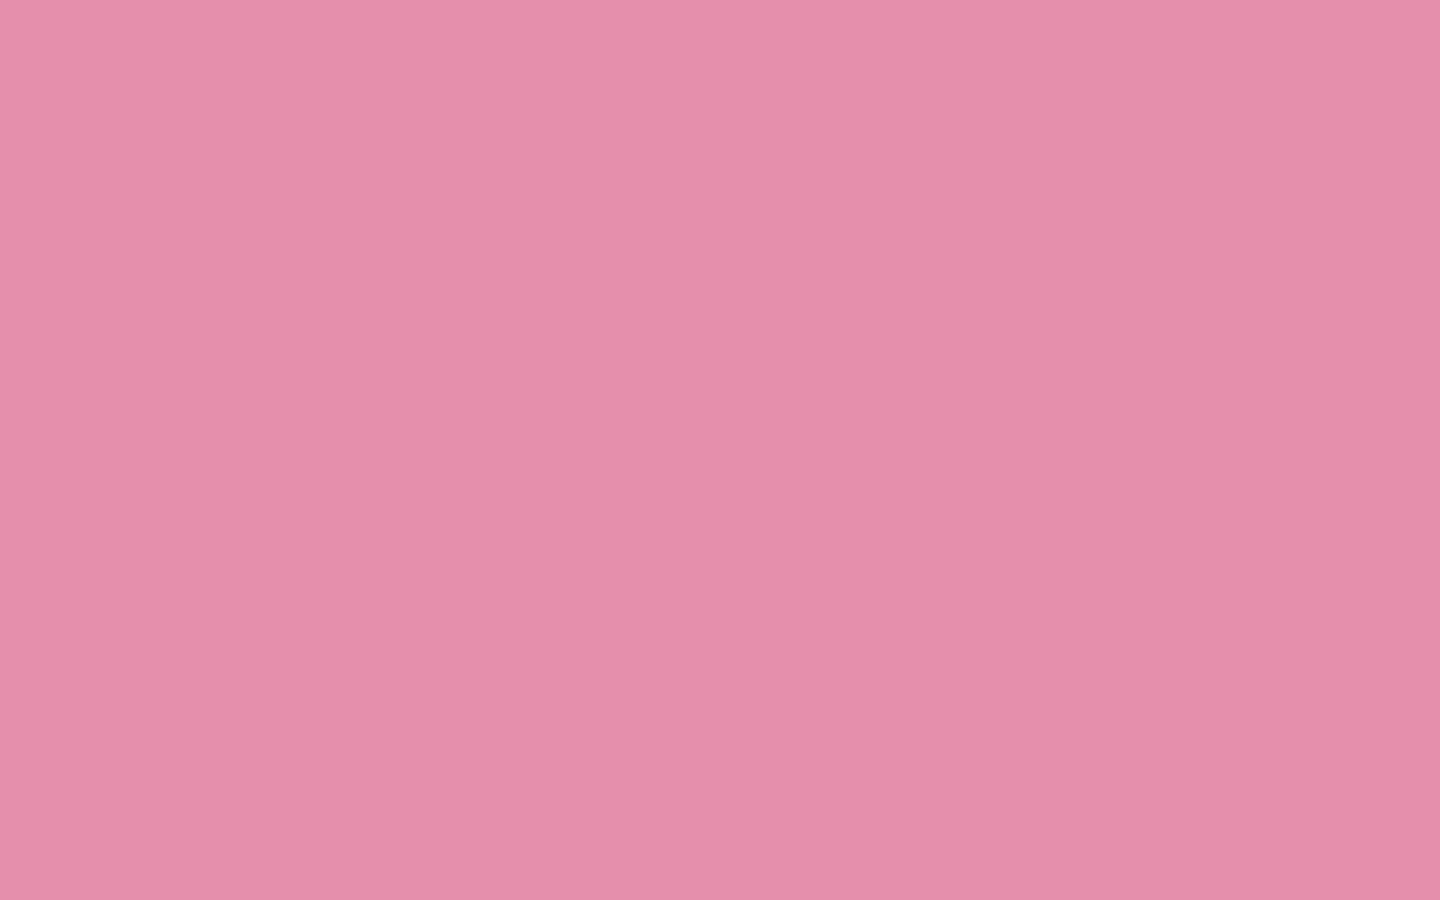 1440x900 Charm Pink Solid Color Background